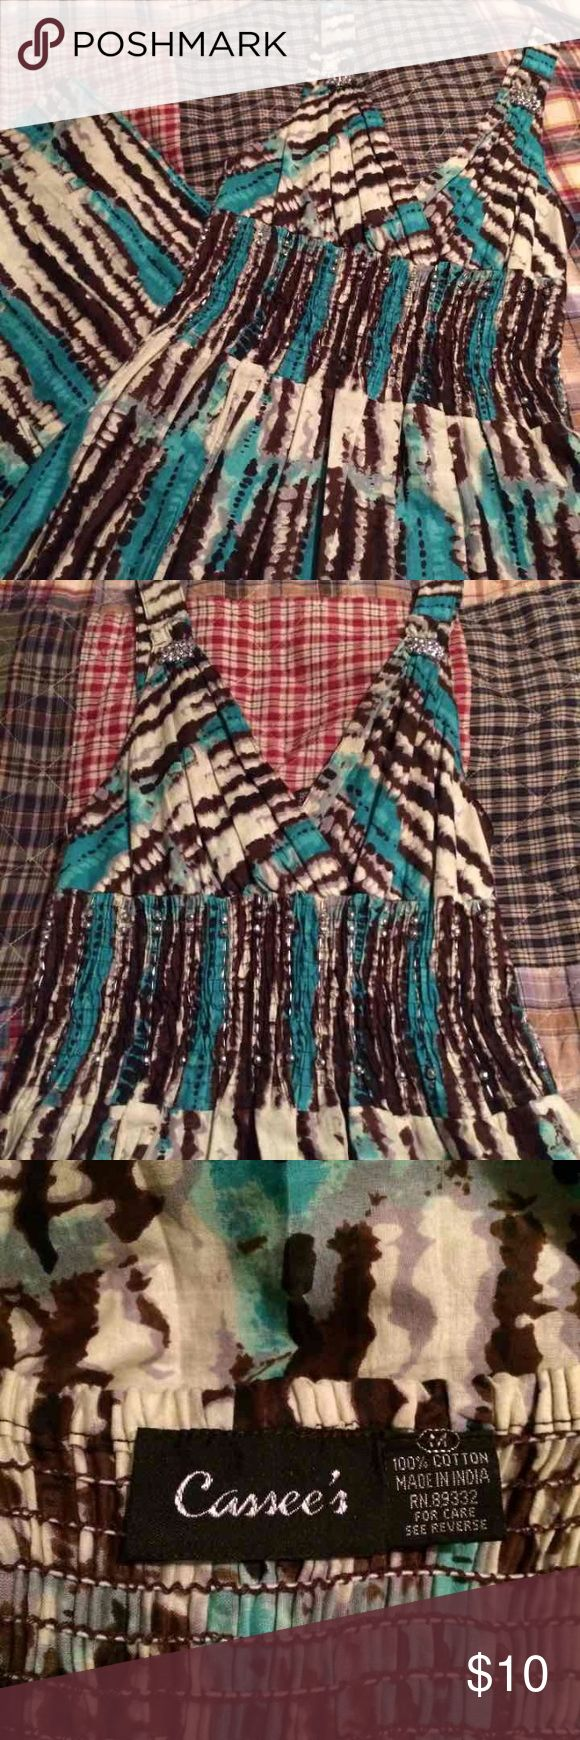 Turquoise and Brown Maxi 😊💕 Halter top Maxi dress 👗💕. 52 inches long, 100% cotton.  Easily hemmed if needed.  Embellished with silver accents at that top, stretchy just under the bust.  Size medium.  Reposhing, sadly it is small on me. Gorgeous summer Maxi 💕💕 Dresses Maxi